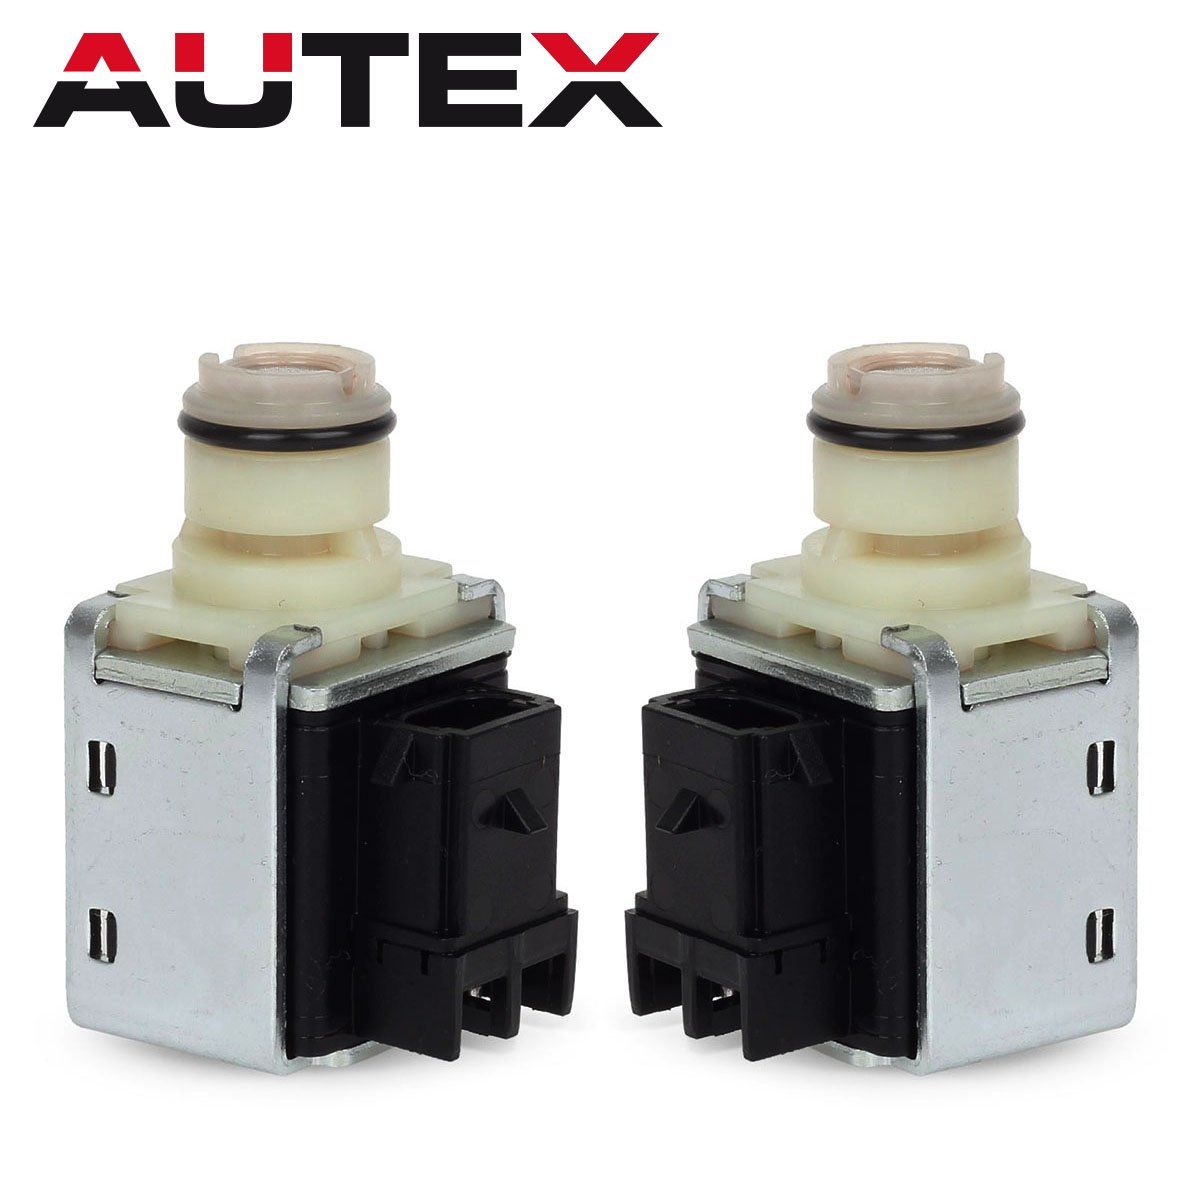 AUTEX 4L60E 4L65E 4L70E Transmission Shift Solenoid Valve Set A&B  Replacement For Chevy Astro 93-05/Chevy Colorado 04-12/Chevrolet Blazer